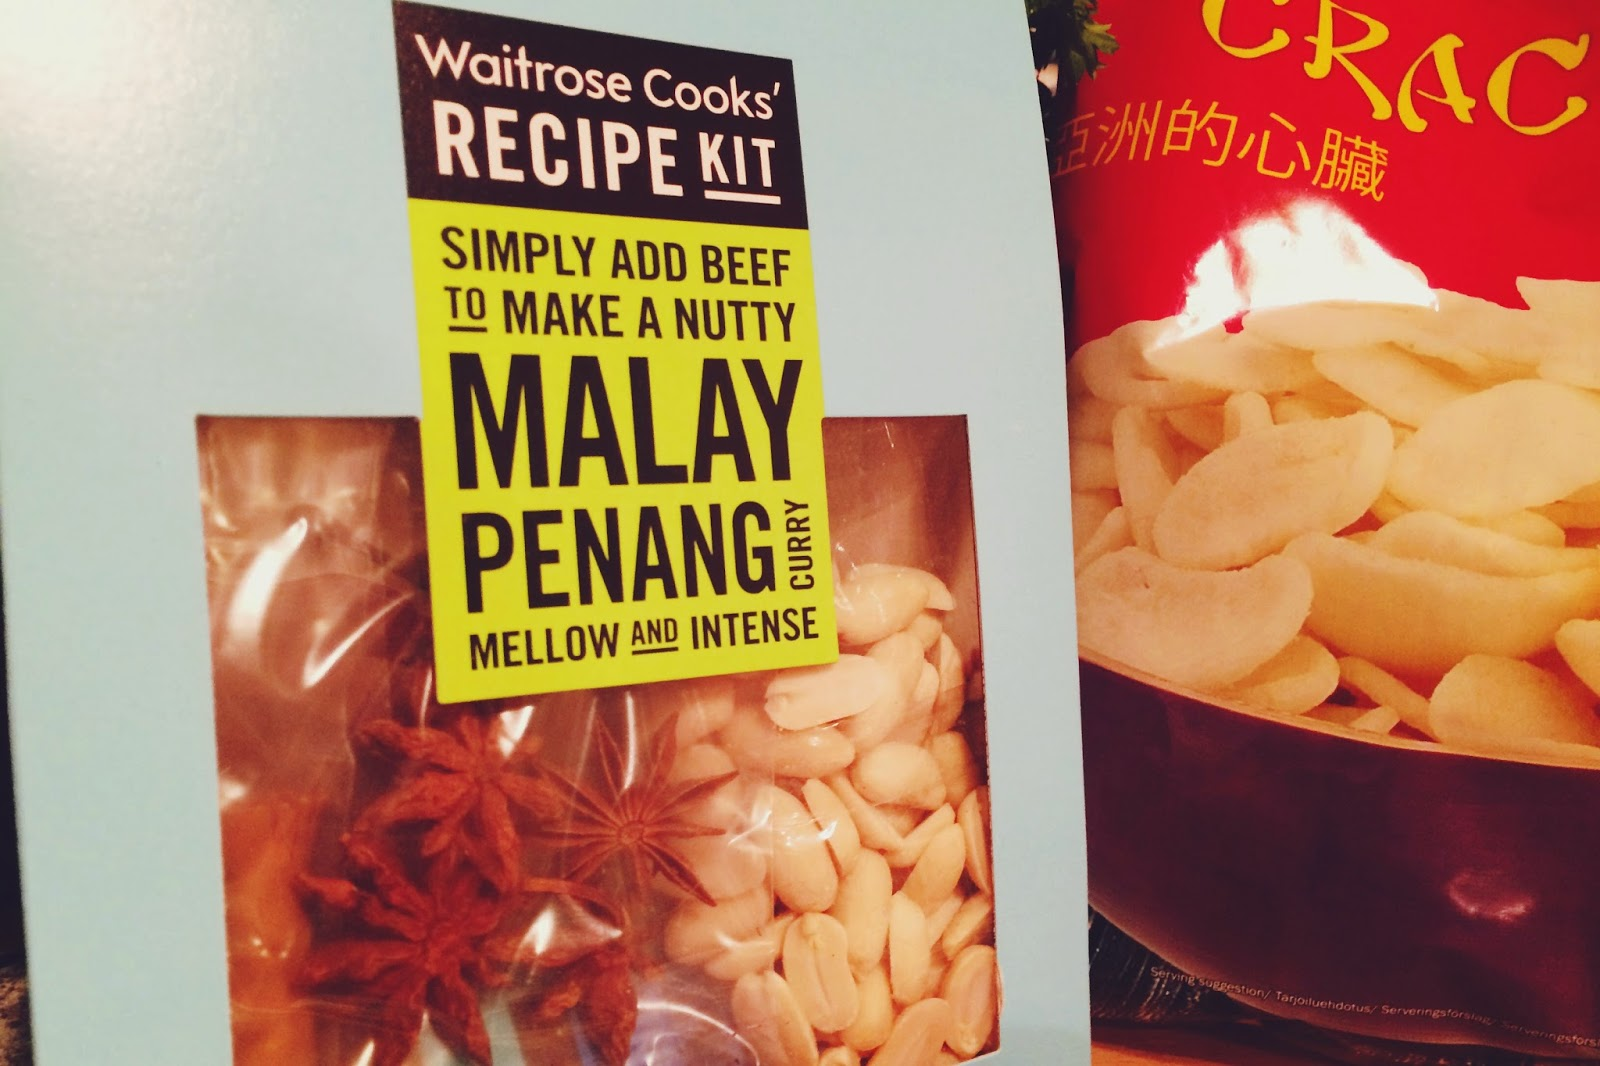 Waitrose Malay Penang kit, Waitrose recipe kit review, FashionFake